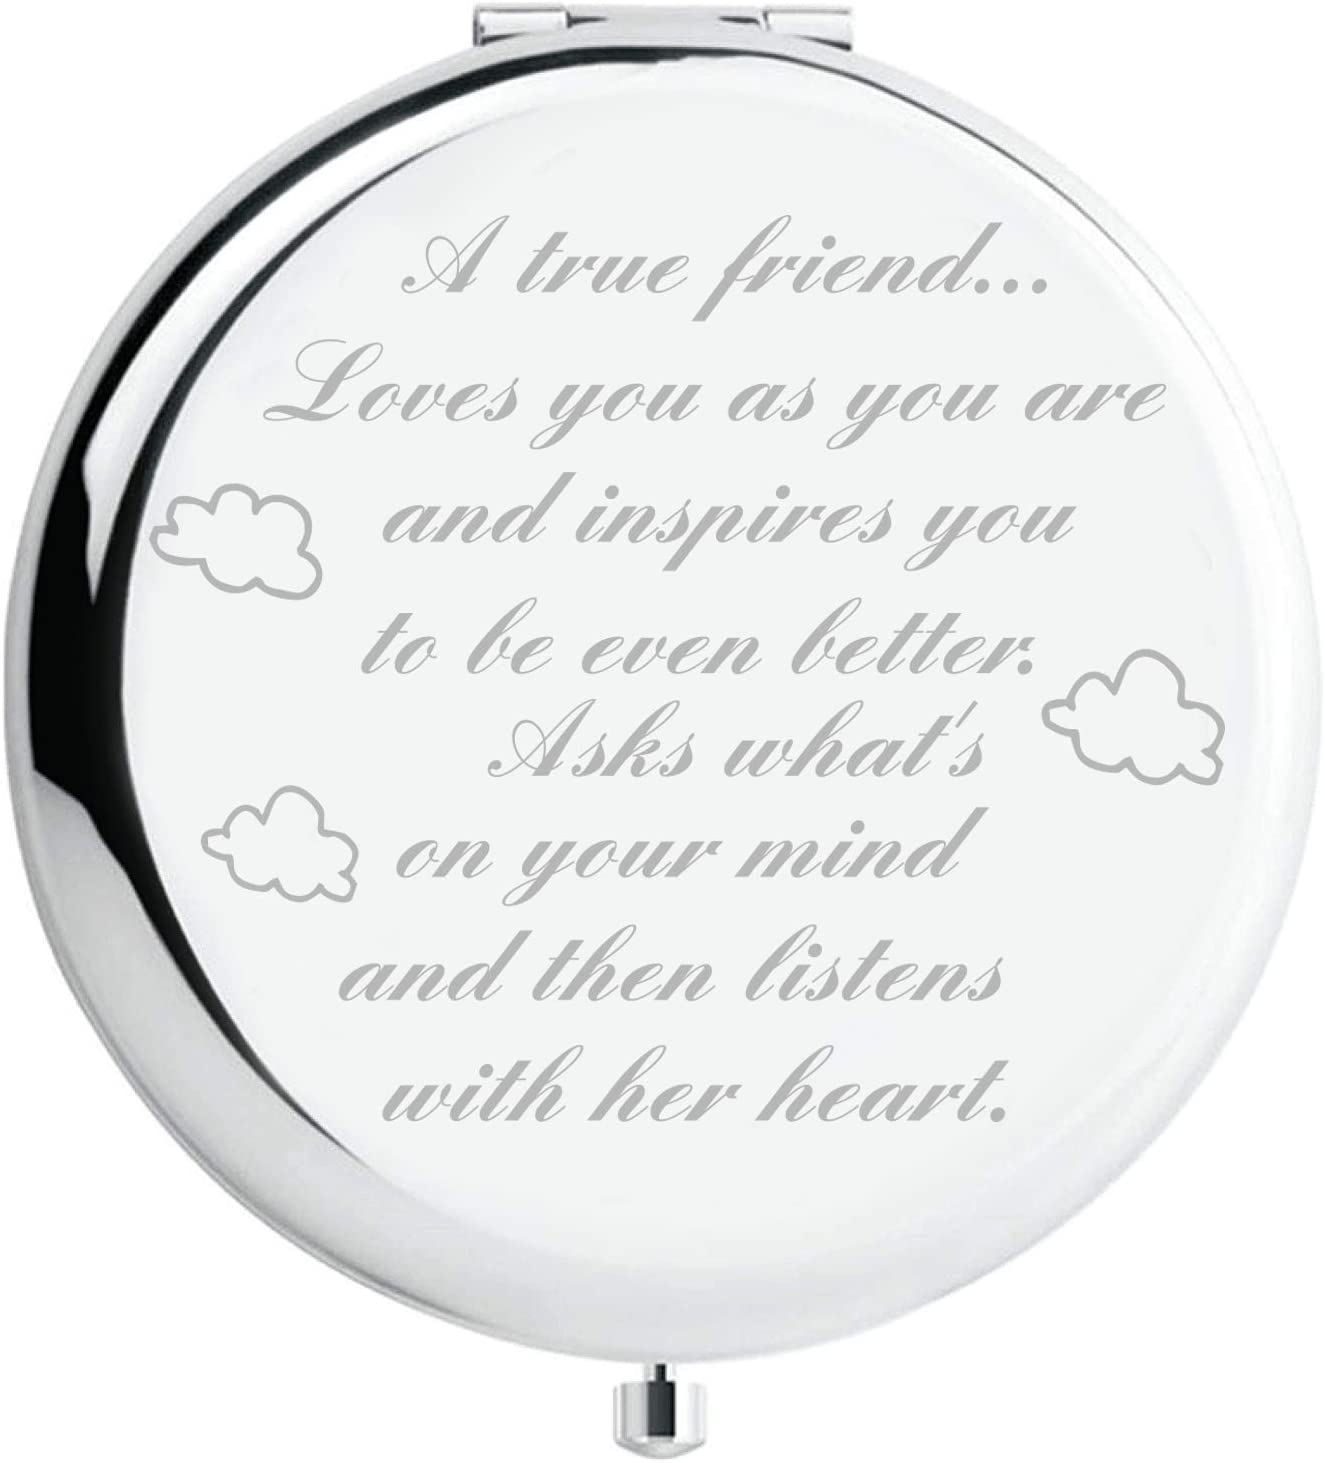 Fnbgl Friendship Personalized Travel Pocket Makeup We OFFer at Easy-to-use cheap prices Mirror True A